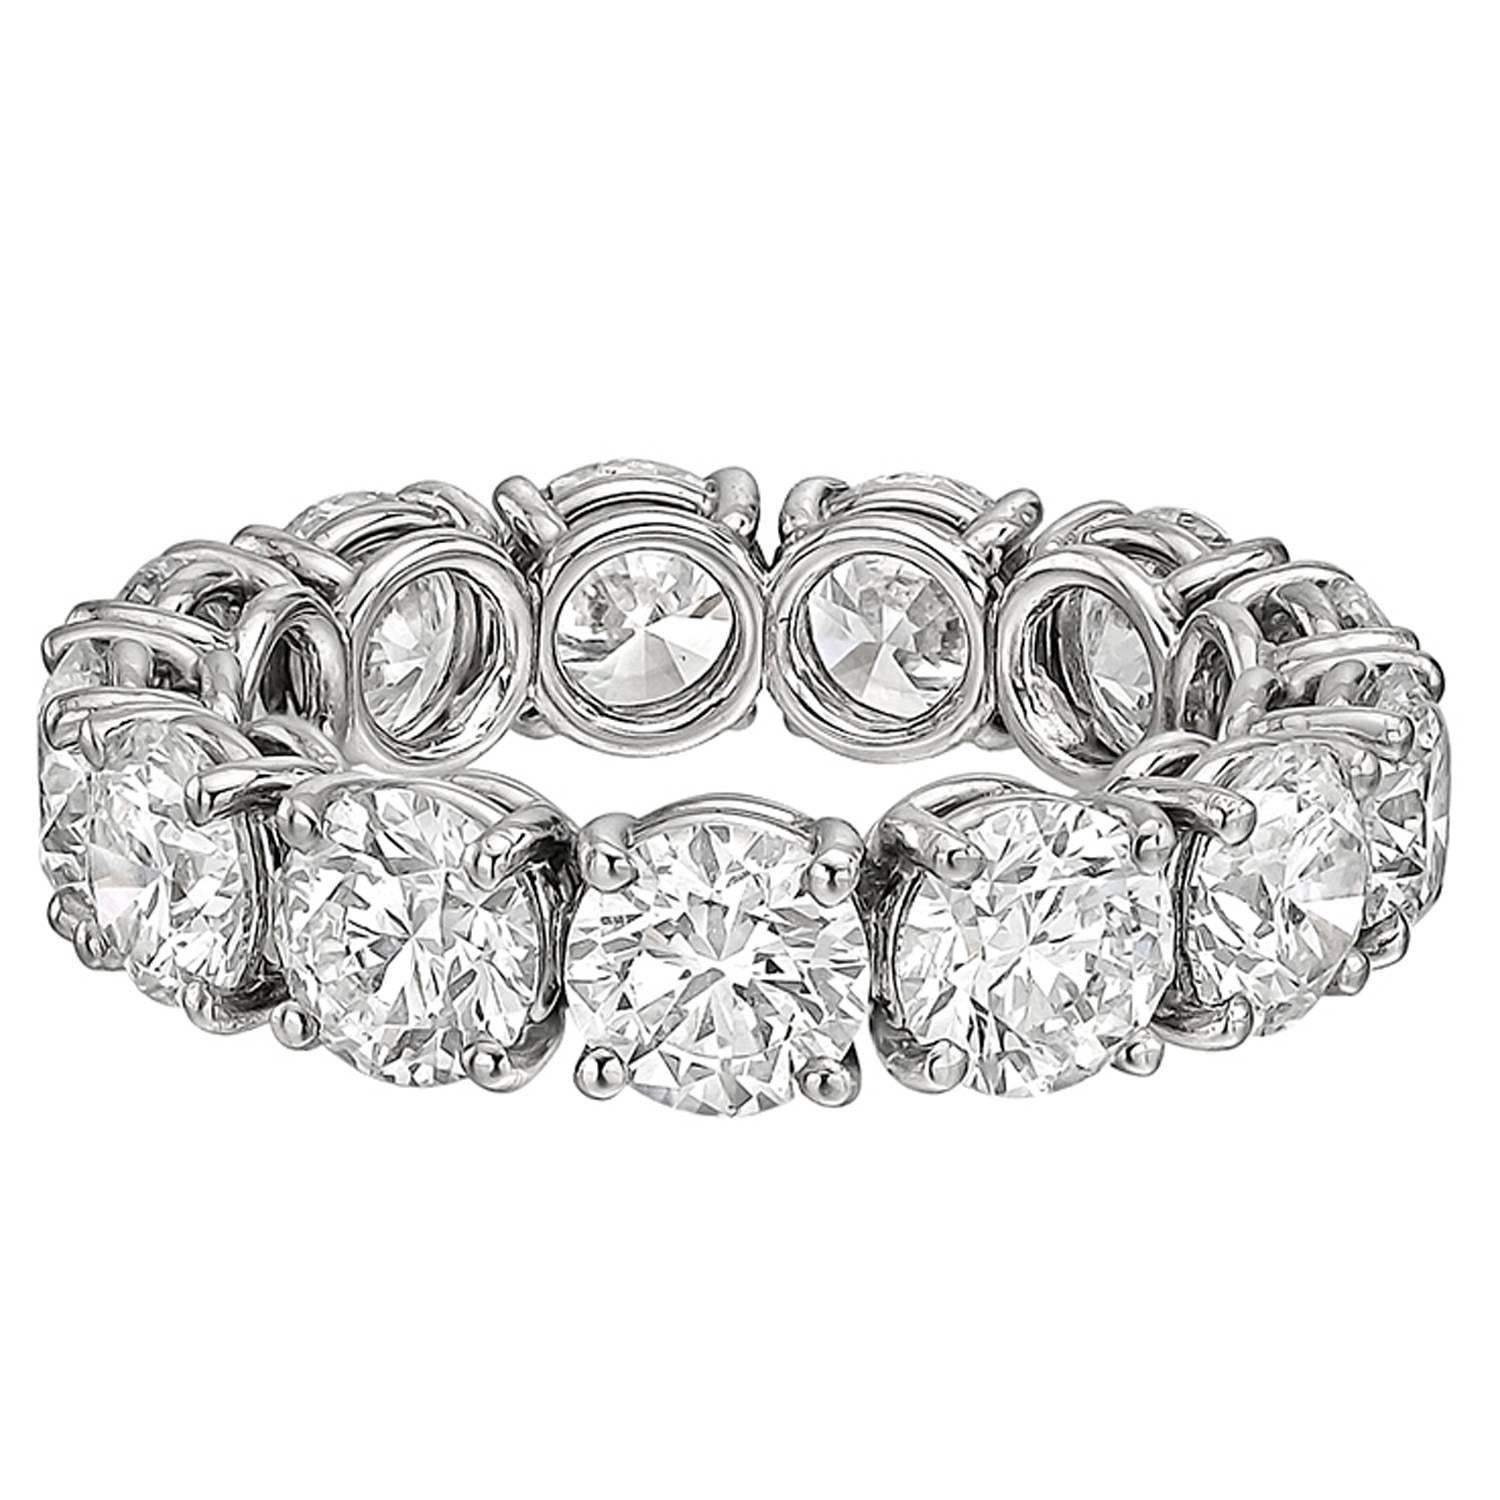 weighing diamond a brilliant bands platinum betteridge ct prong edge sculpted approx shared ring in setting u band carats tw mounted round style with sixteen eternity diamonds p total